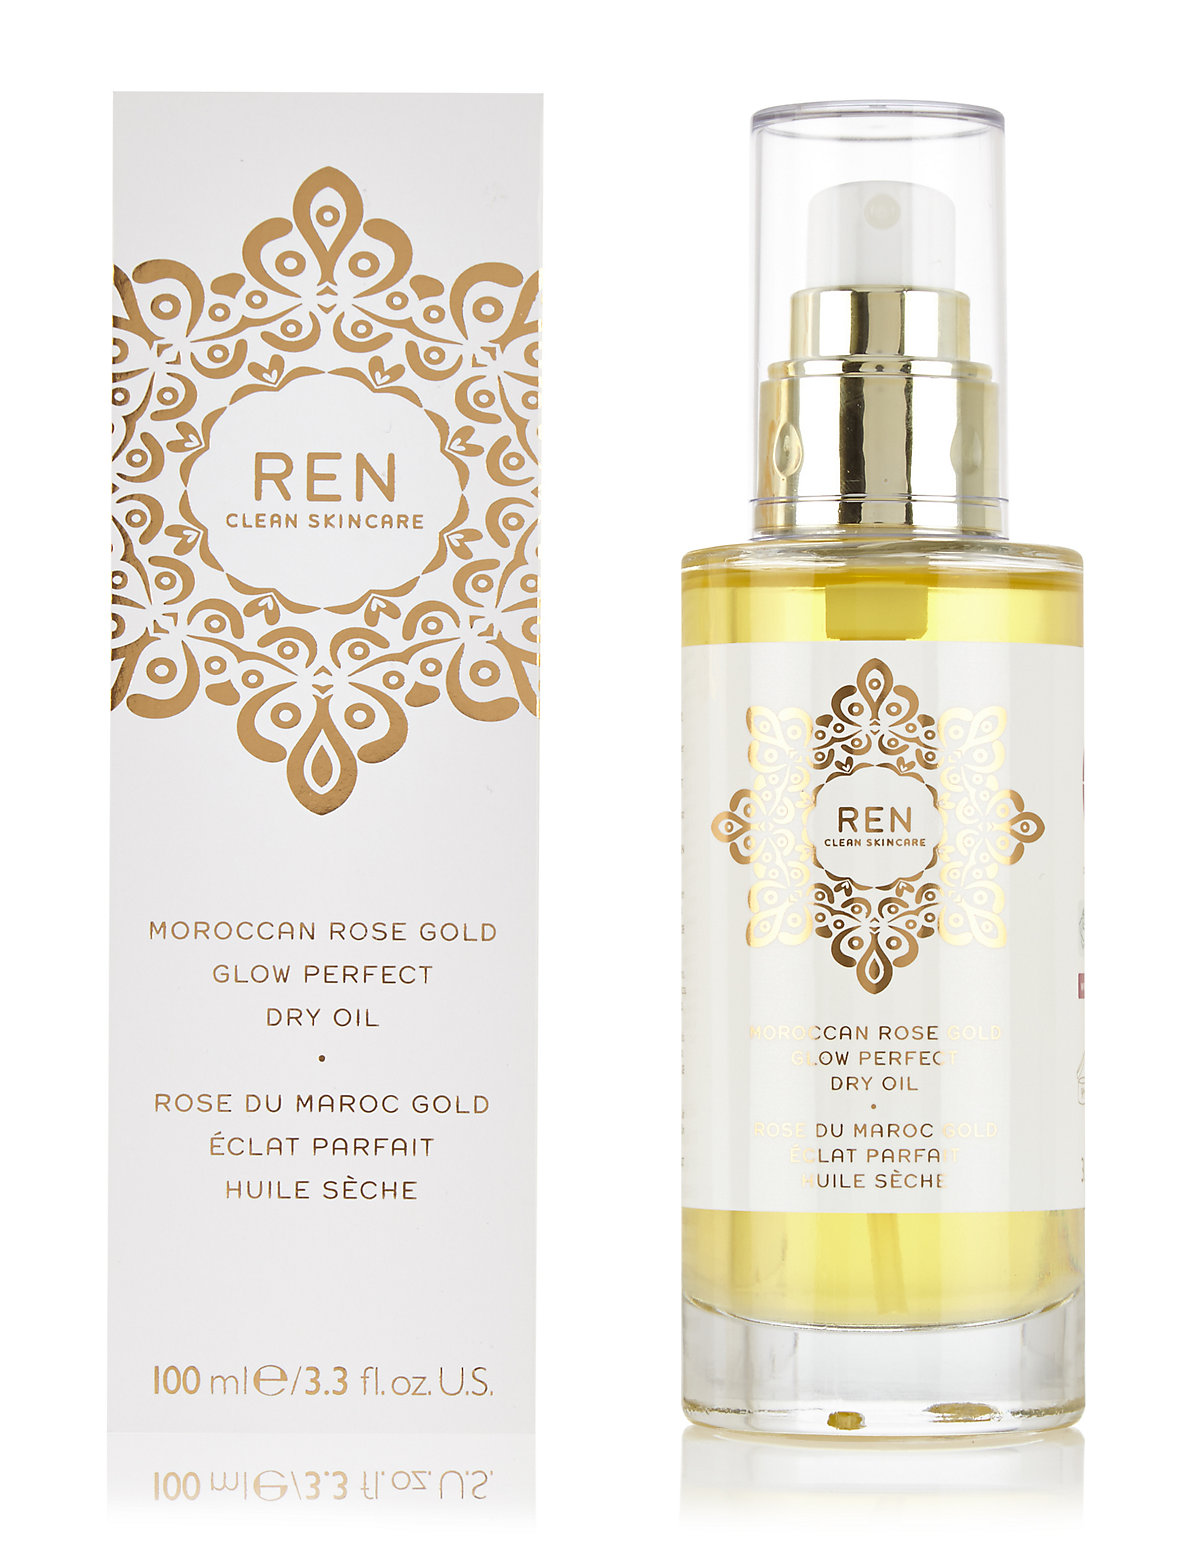 Moroccan Rose Gold Glow Perfect Dry Oil 100ml